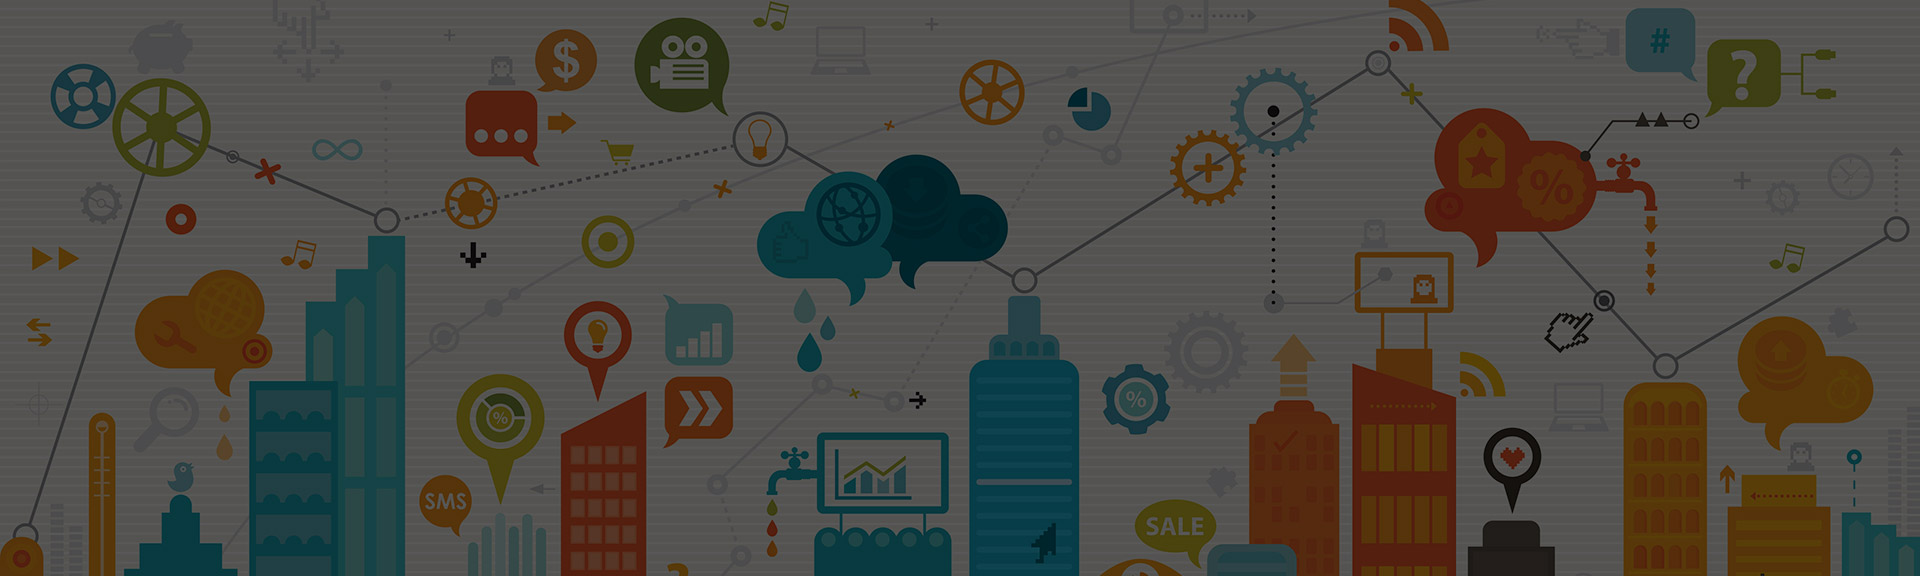 Internet of Things banner